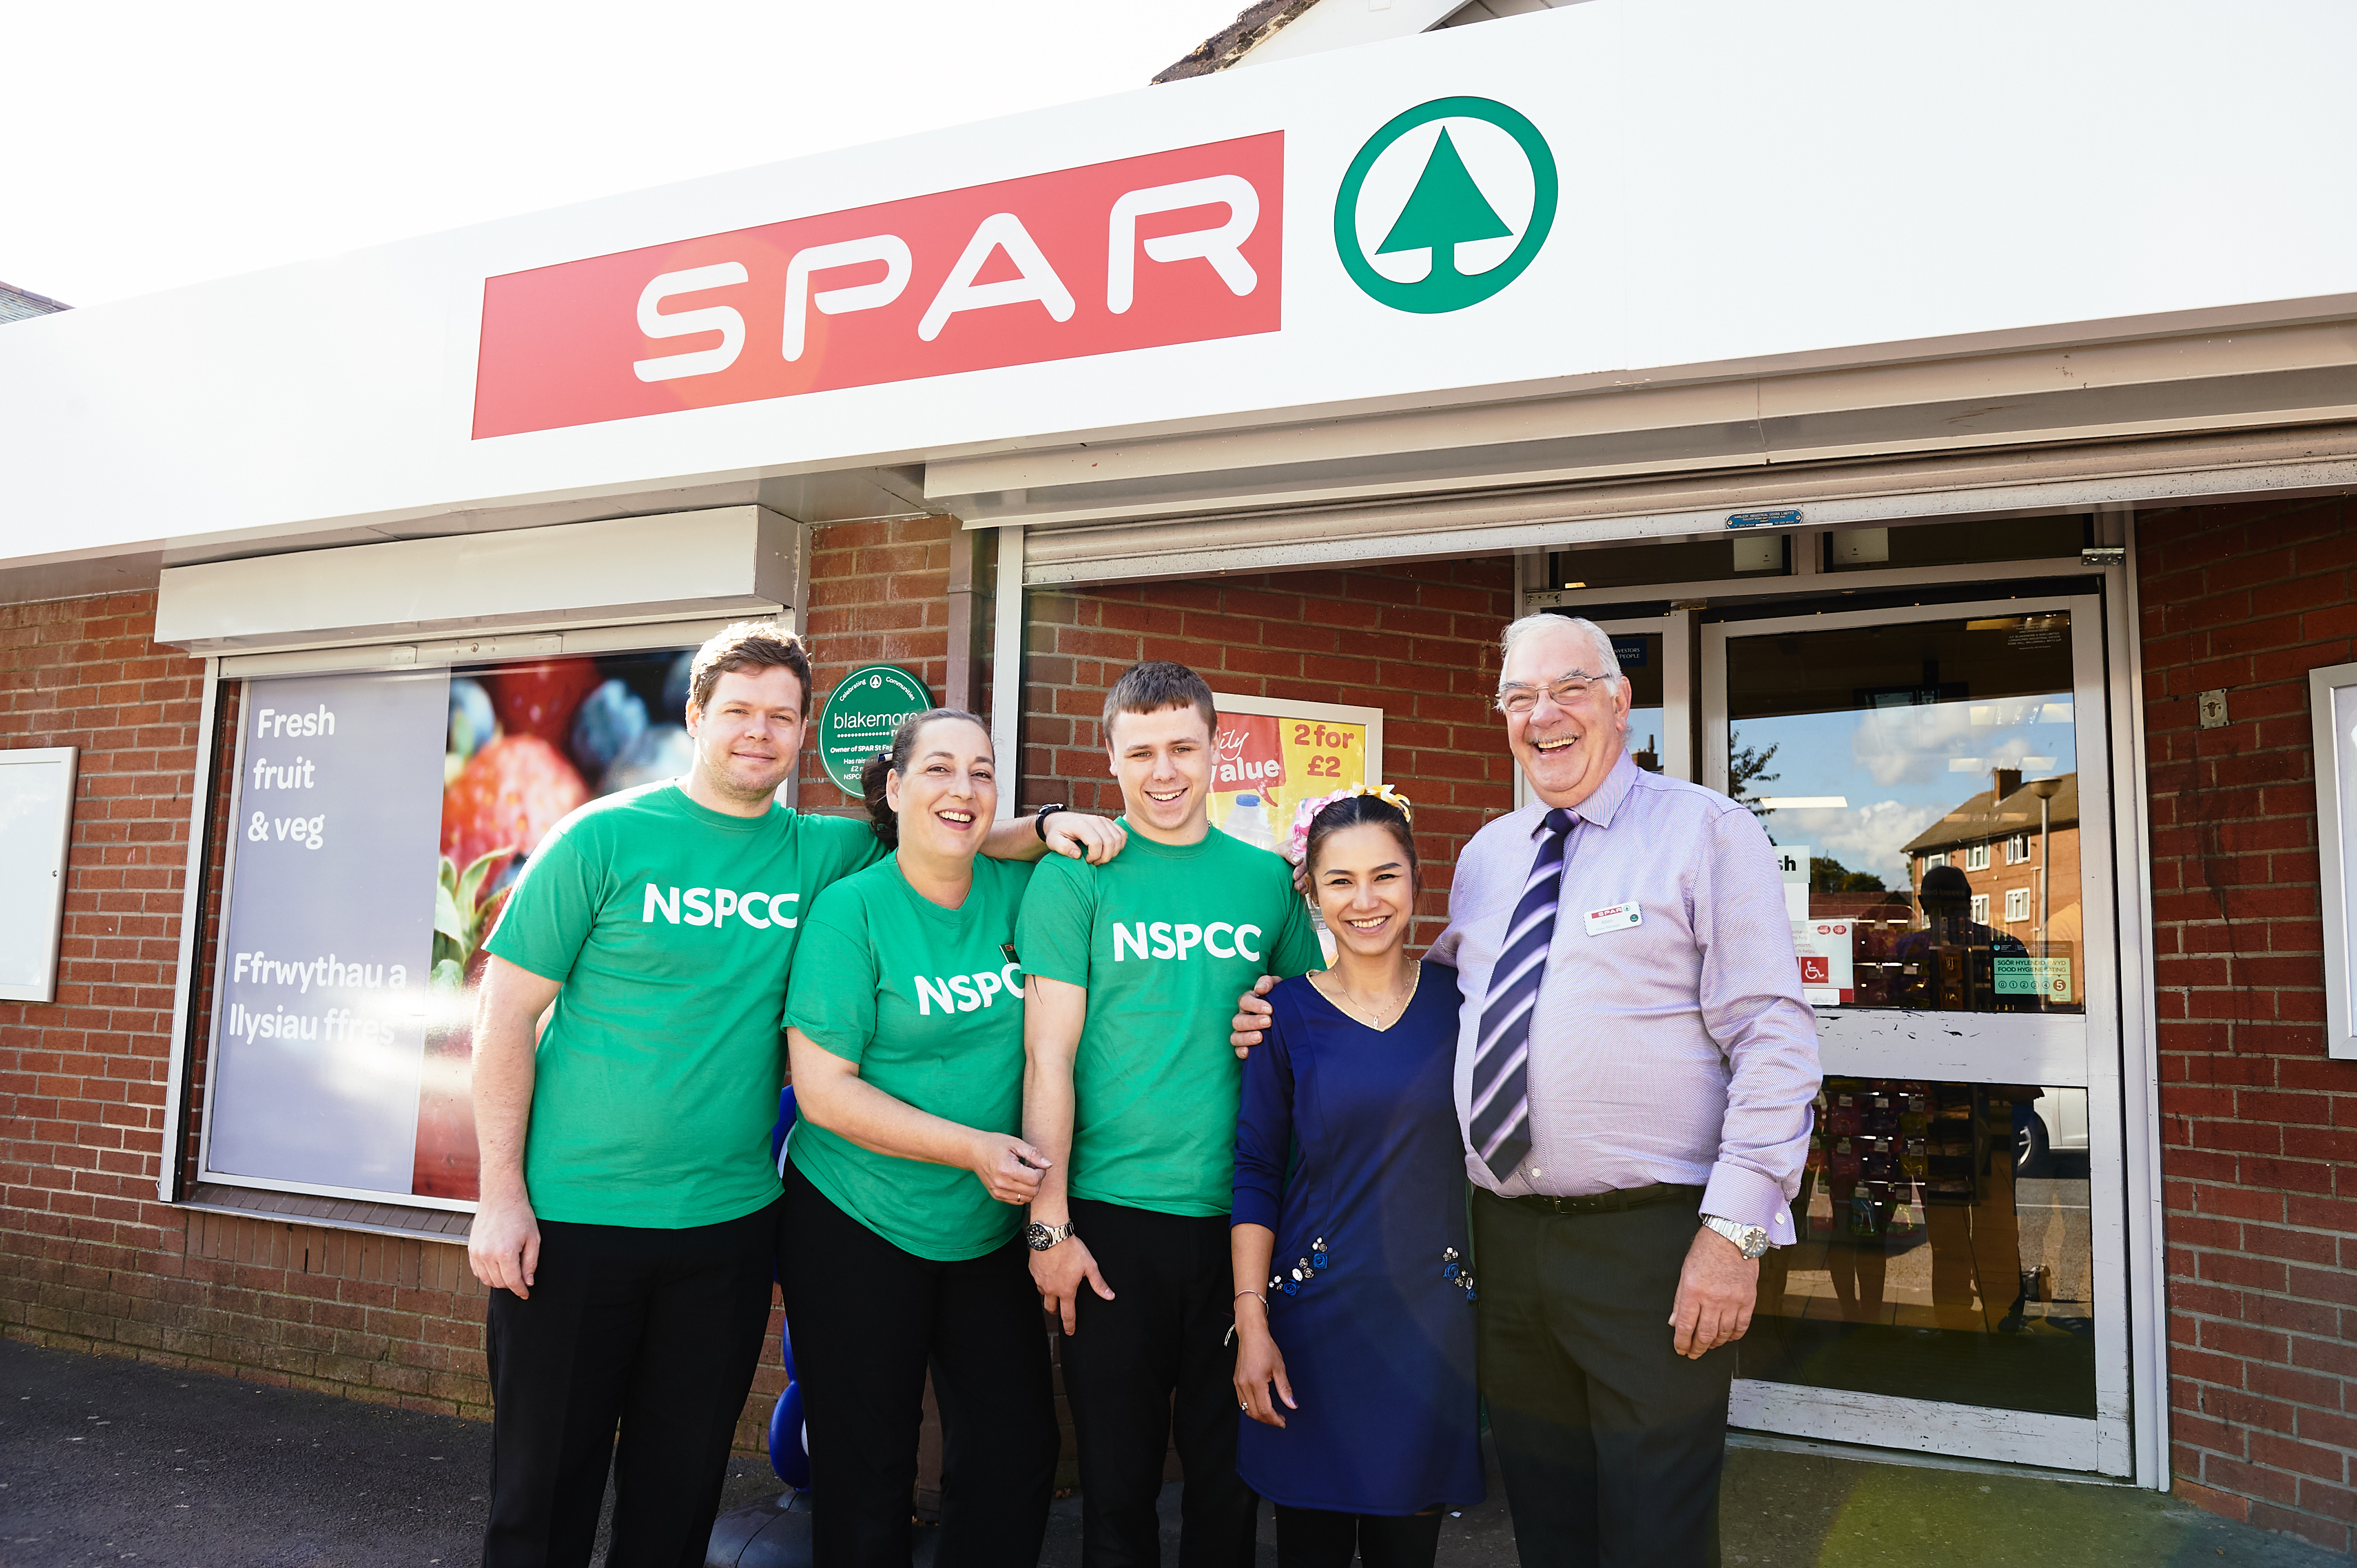 Employees_from_Blakemore_Retail_SPAR_St_Fagans